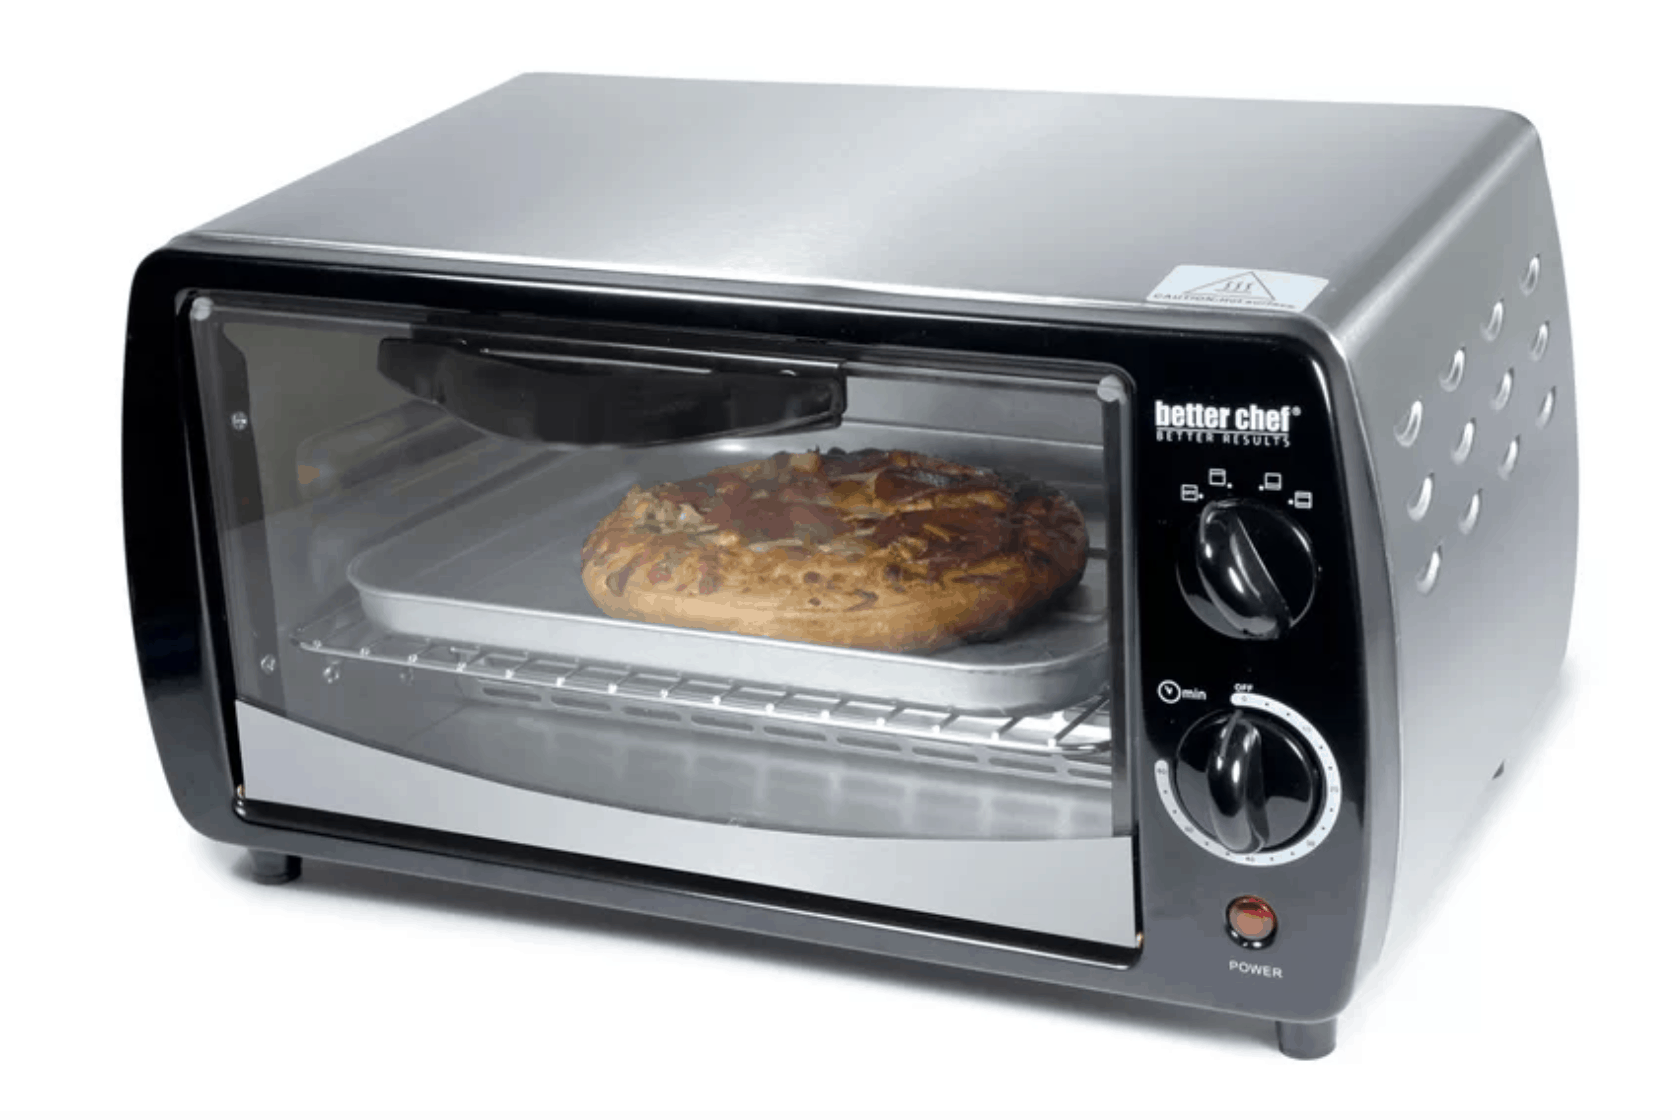 bread small best oven compact mini toaster reviews cuisinart